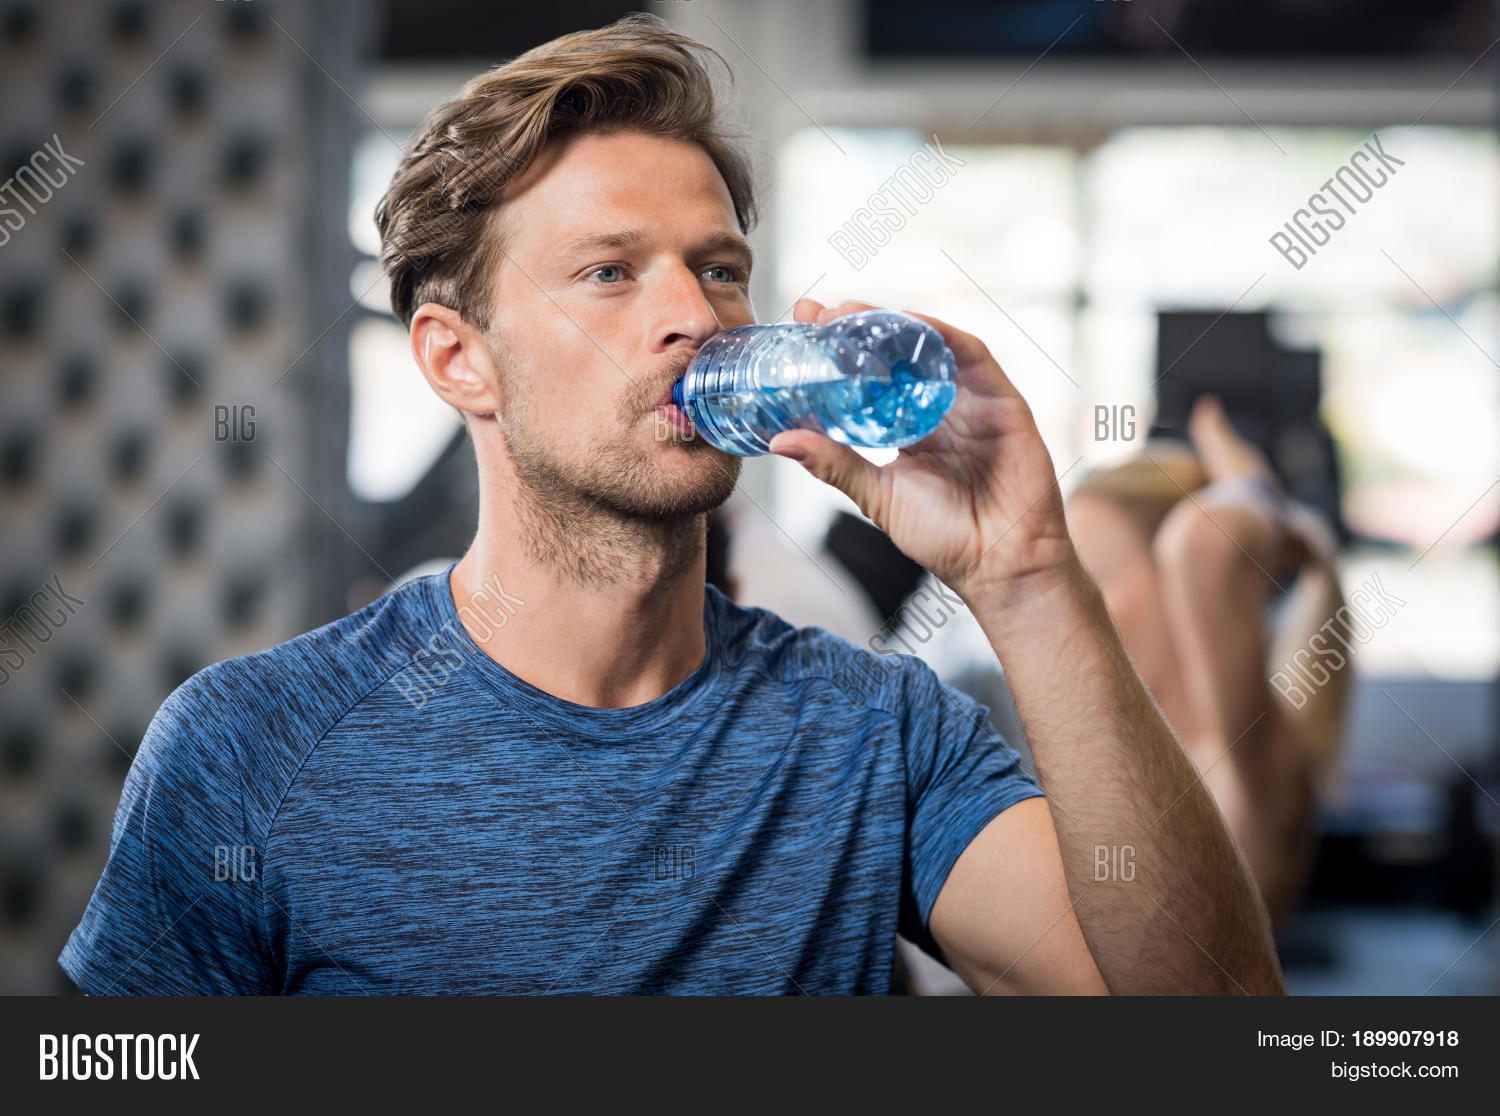 Young Man Drinking Image Photo Free Trial Bigstock